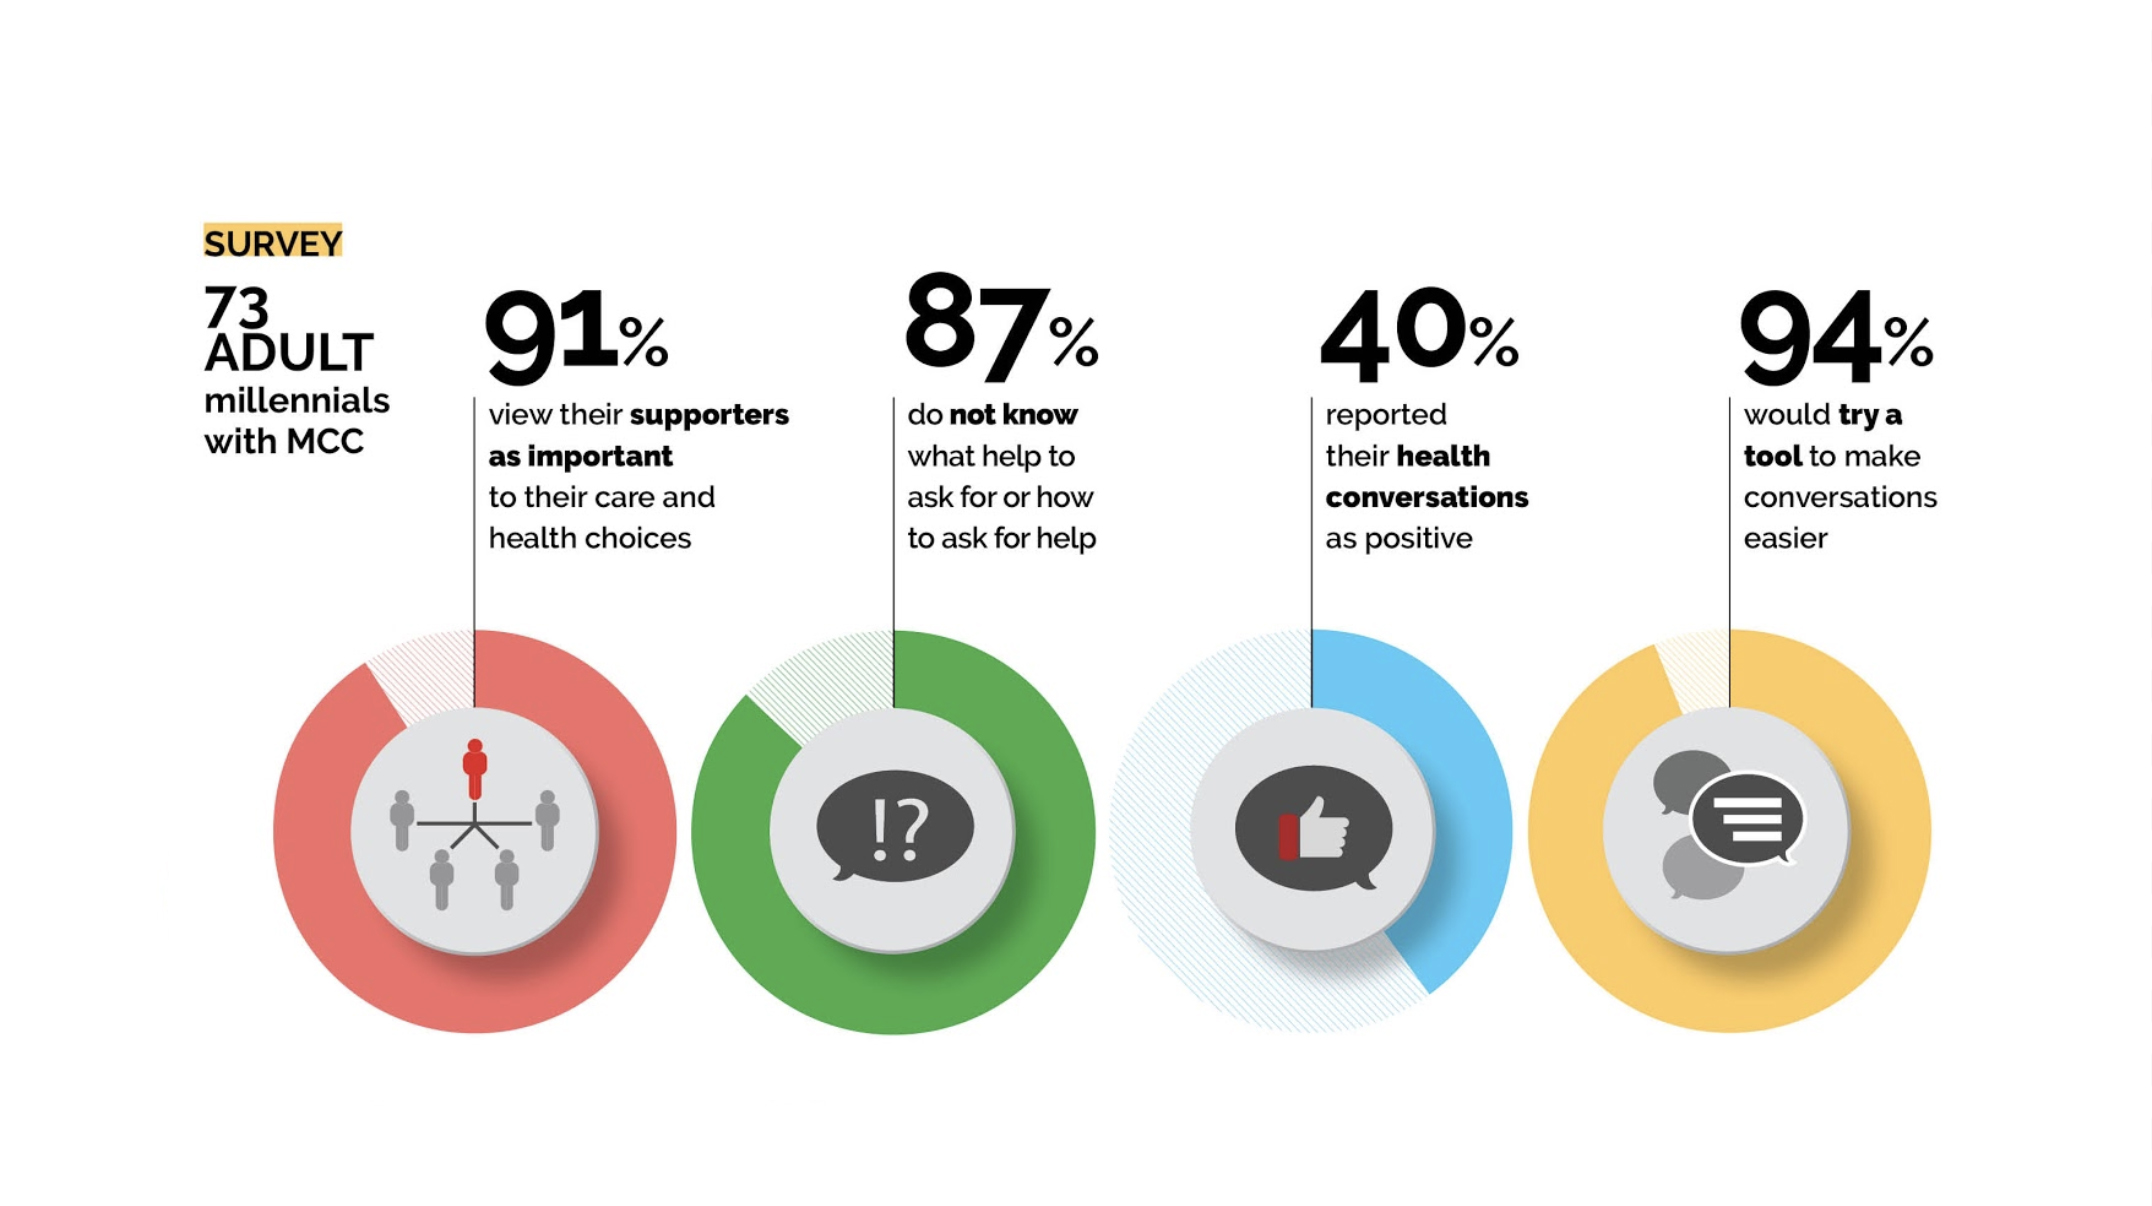 We also conducted an online research with 73 millennials on facebook to validate our hypothesis